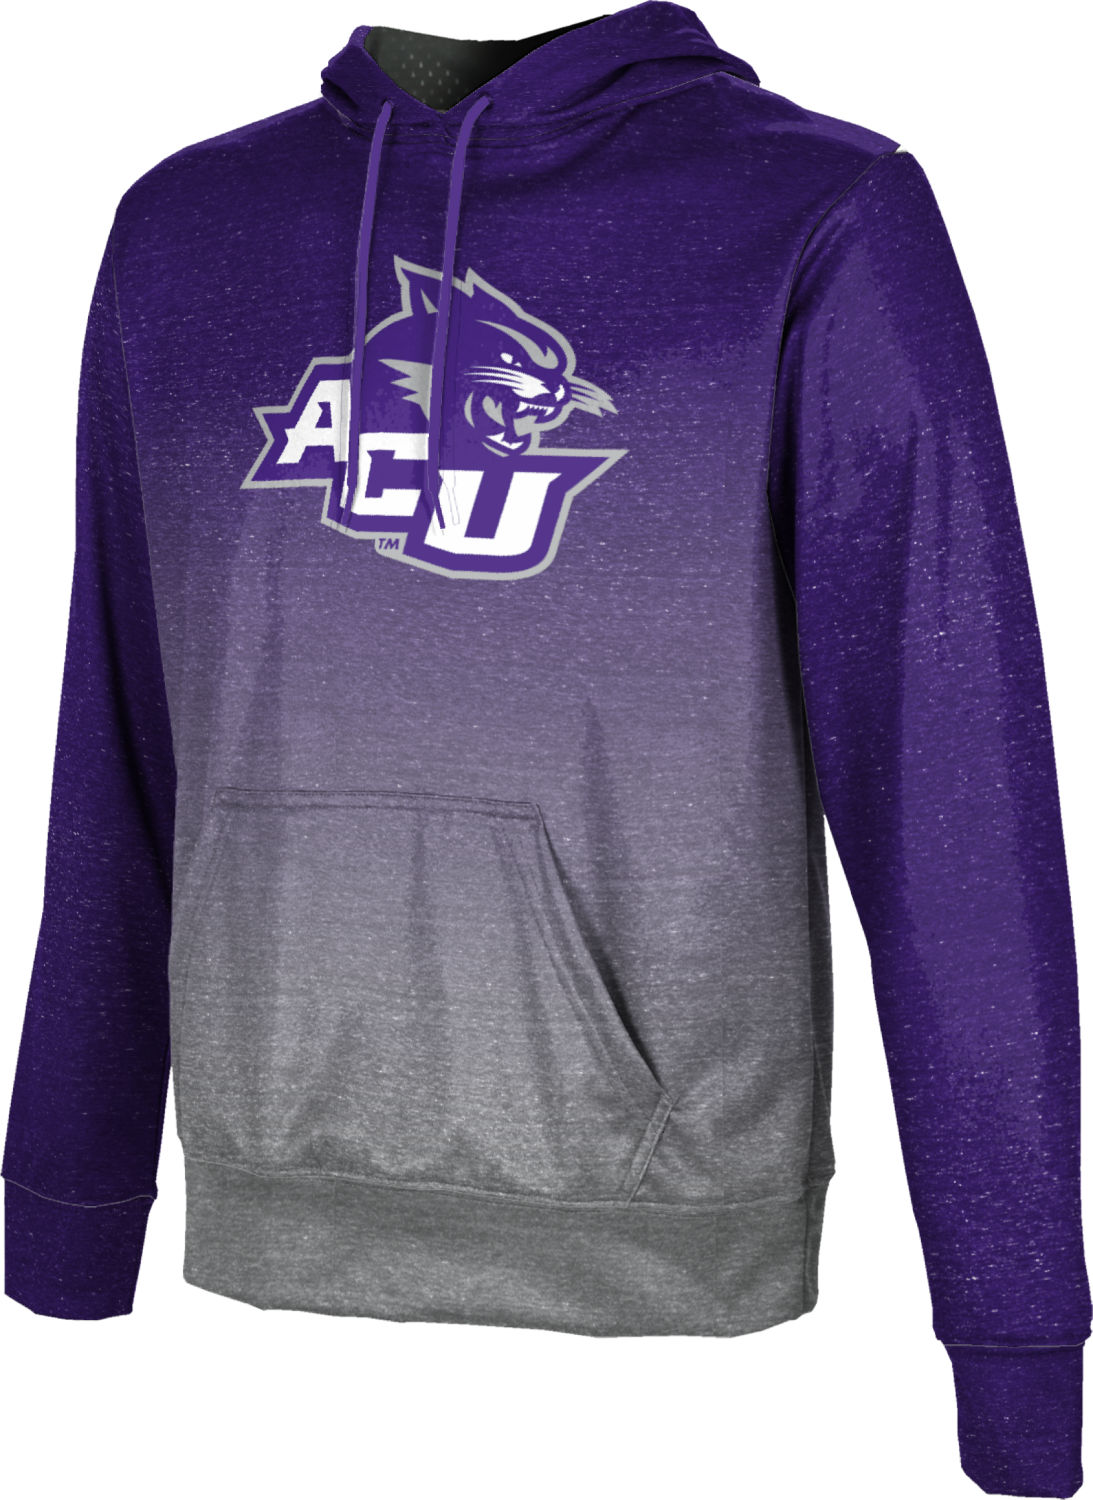 ProSphere University of Central Arkansas Boys Hoodie Sweatshirt Hustle